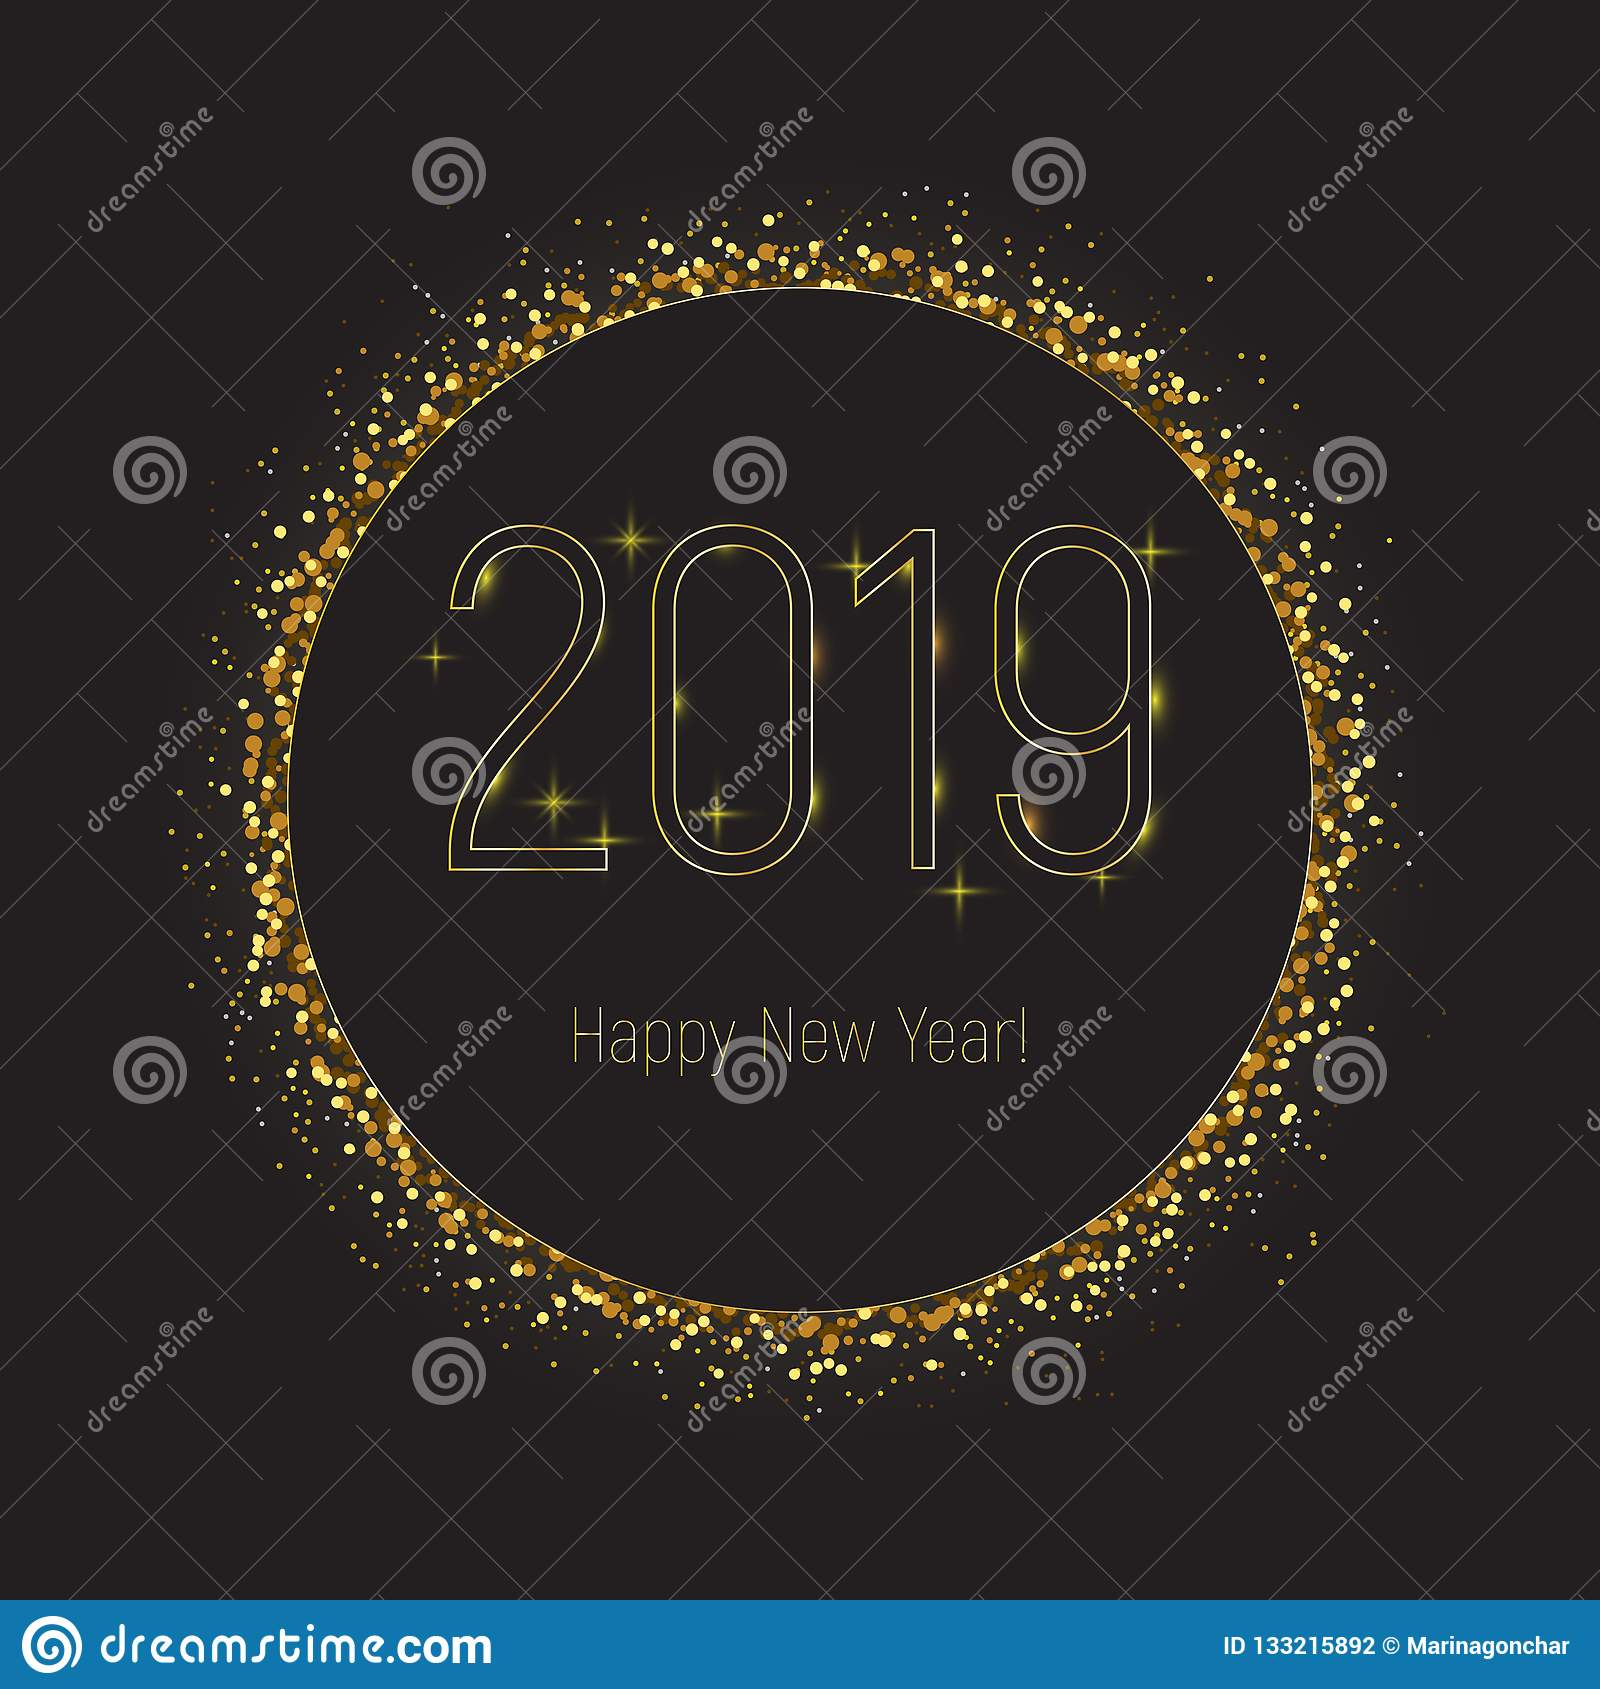 2019 happy new year greeting card black circle with gold glitter border